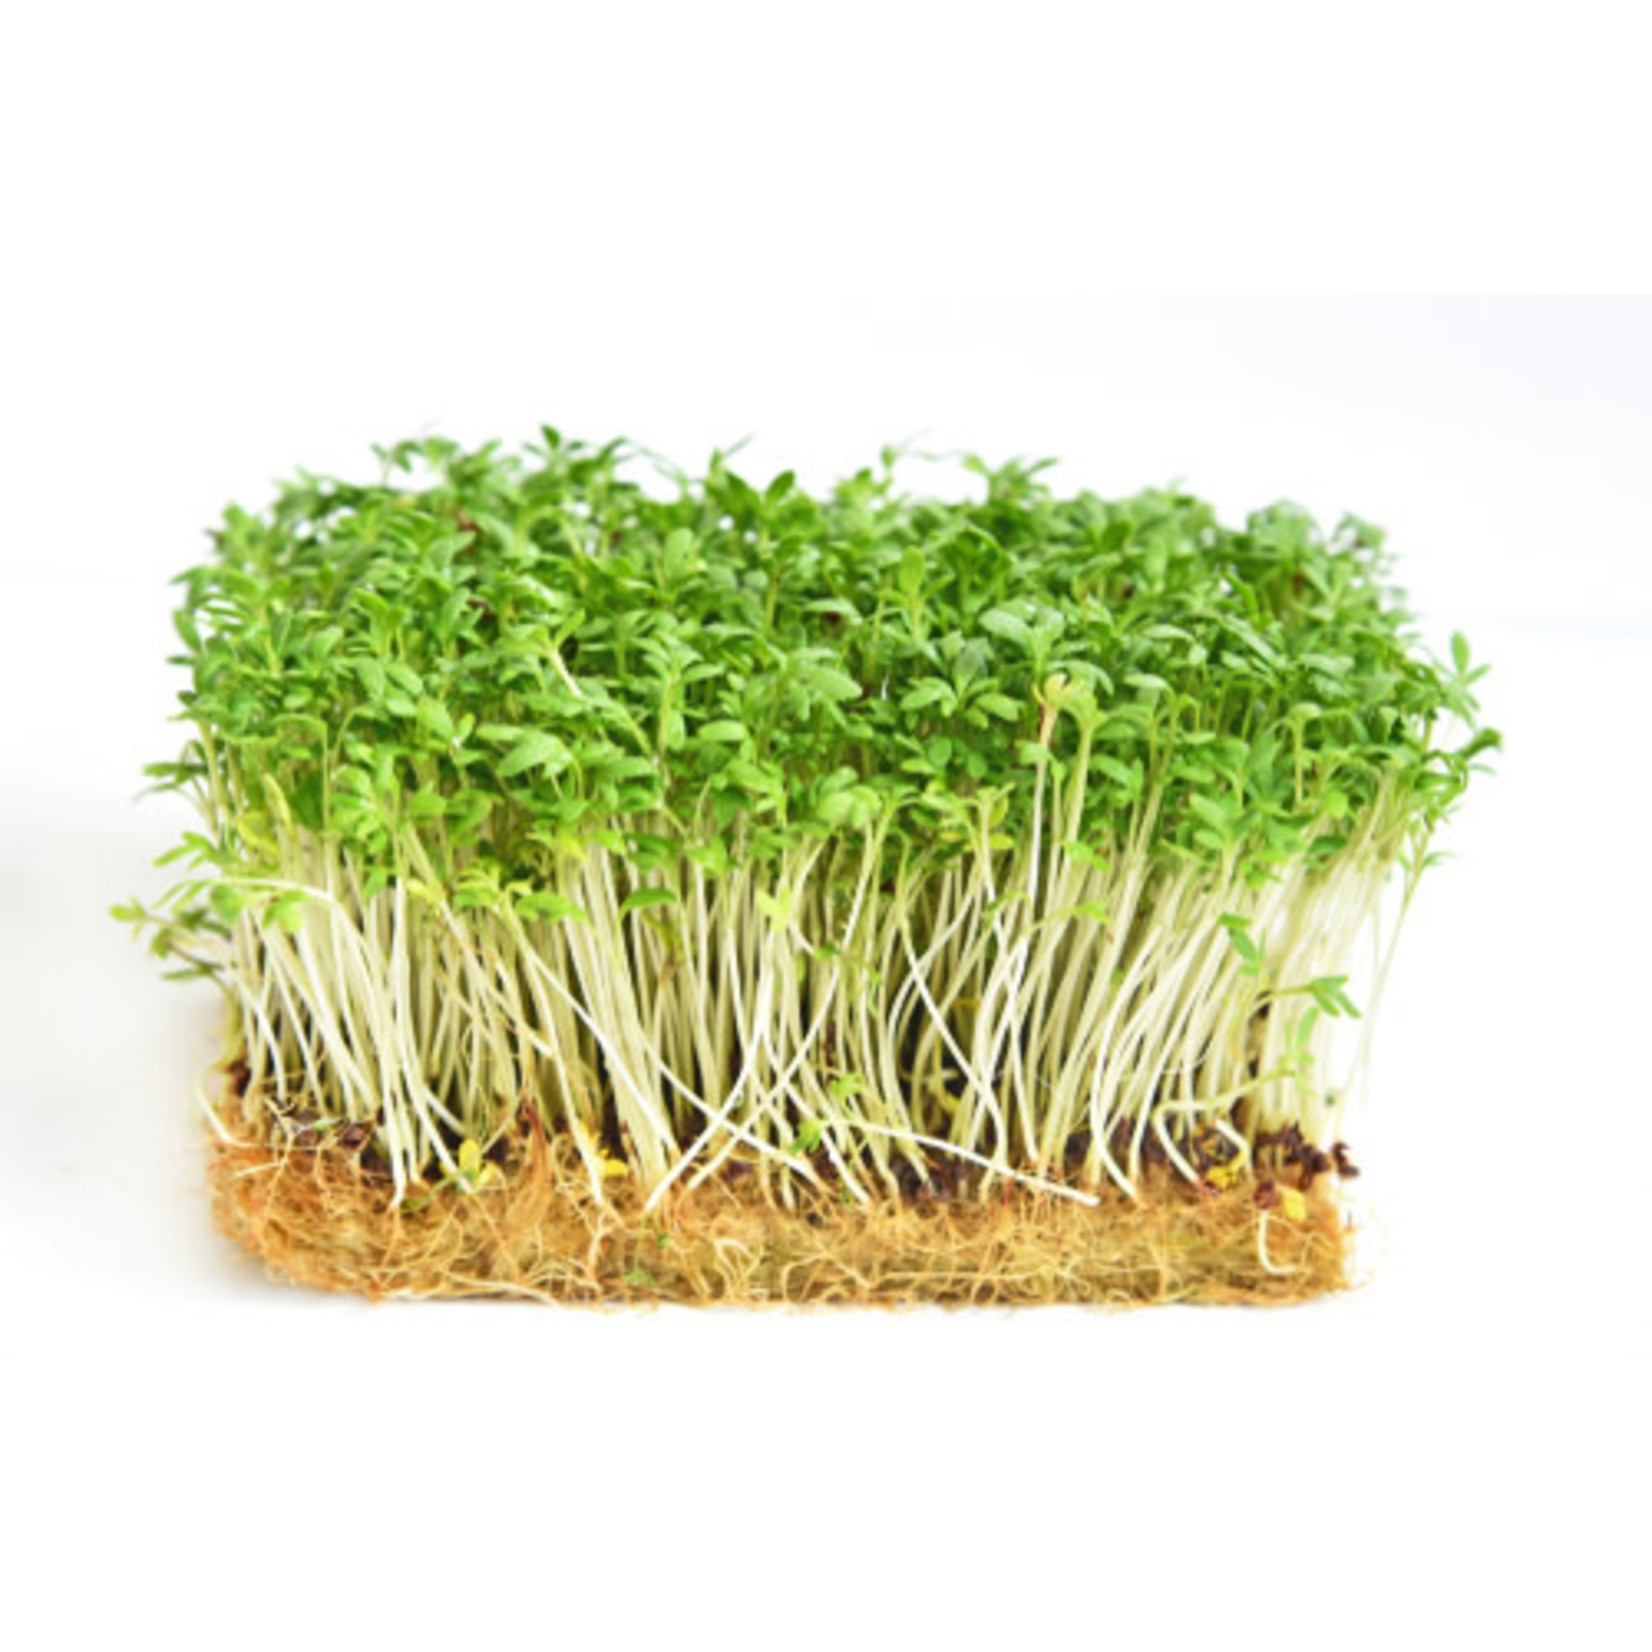 Cress (seed pkg) - Extra Curled Pepper Grass